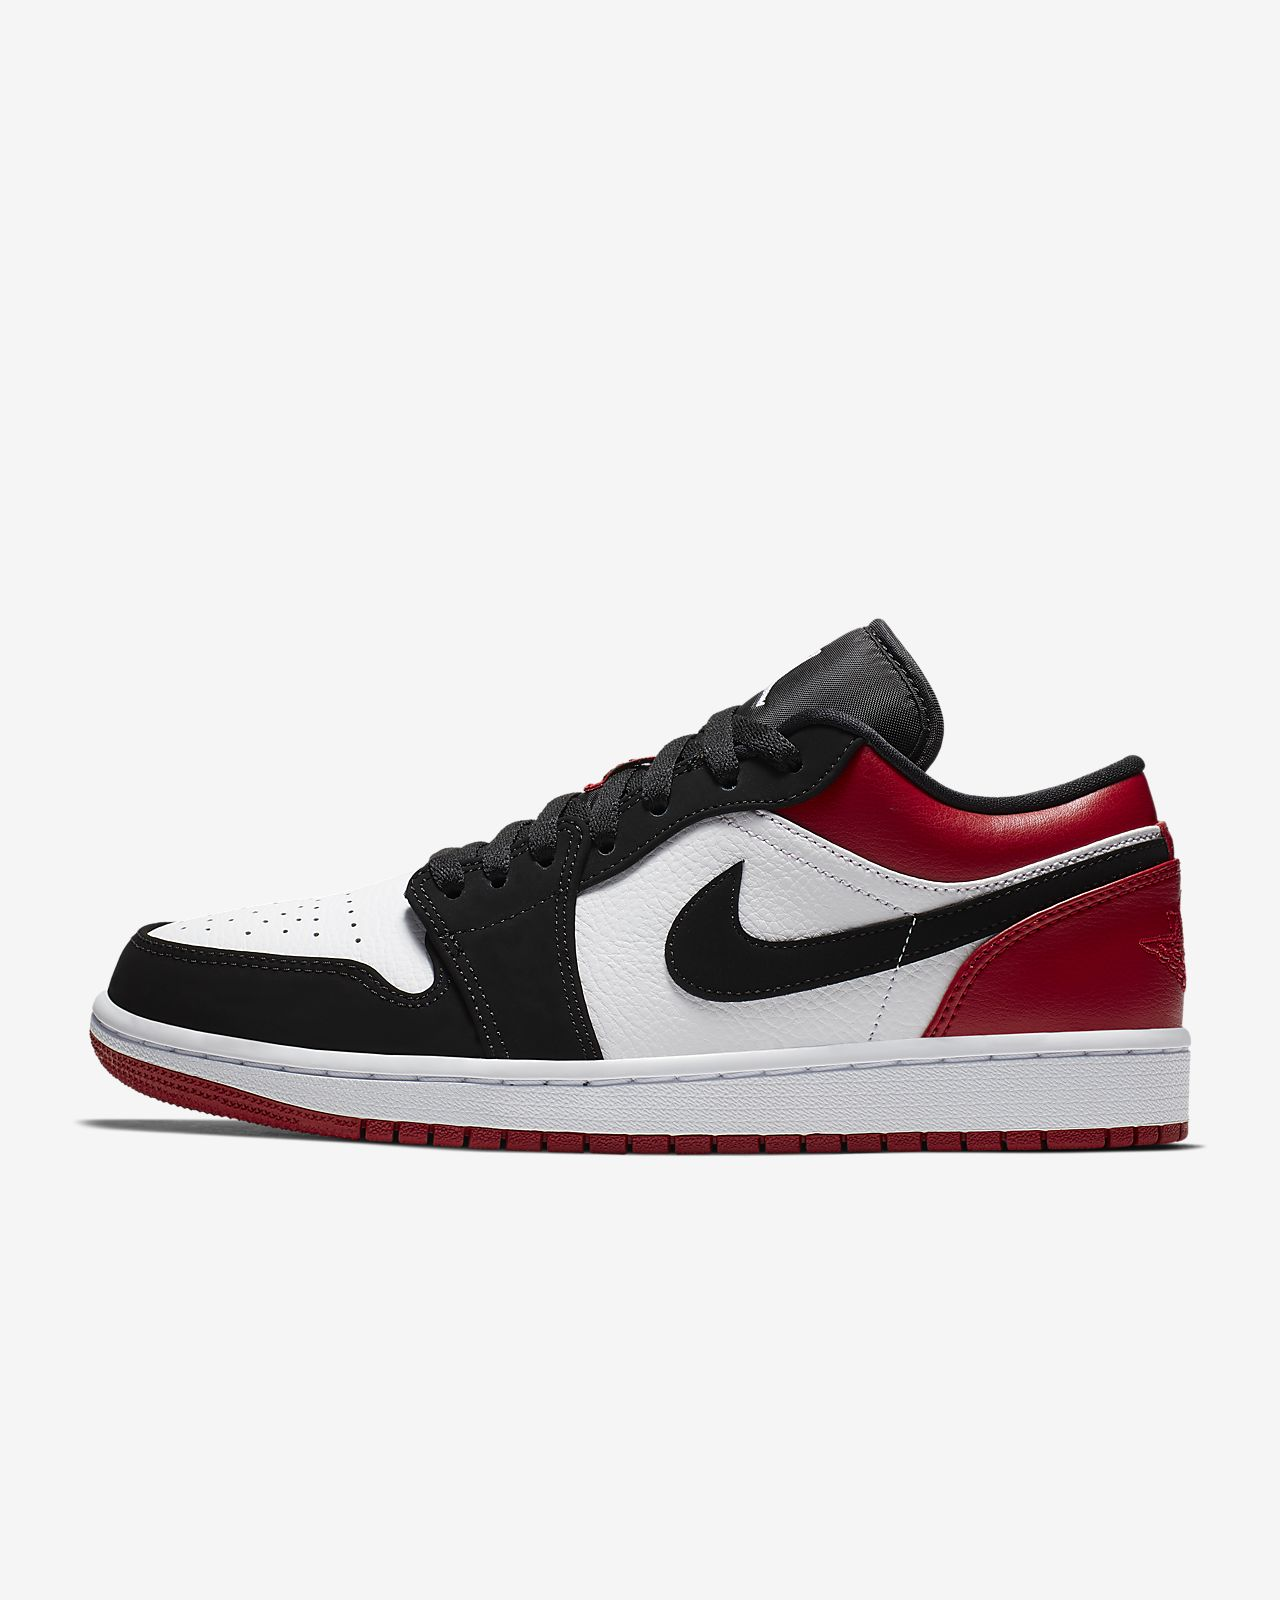 detailed look 735f5 55efa Air Jordan 1 Low Men's Shoe. Nike.com